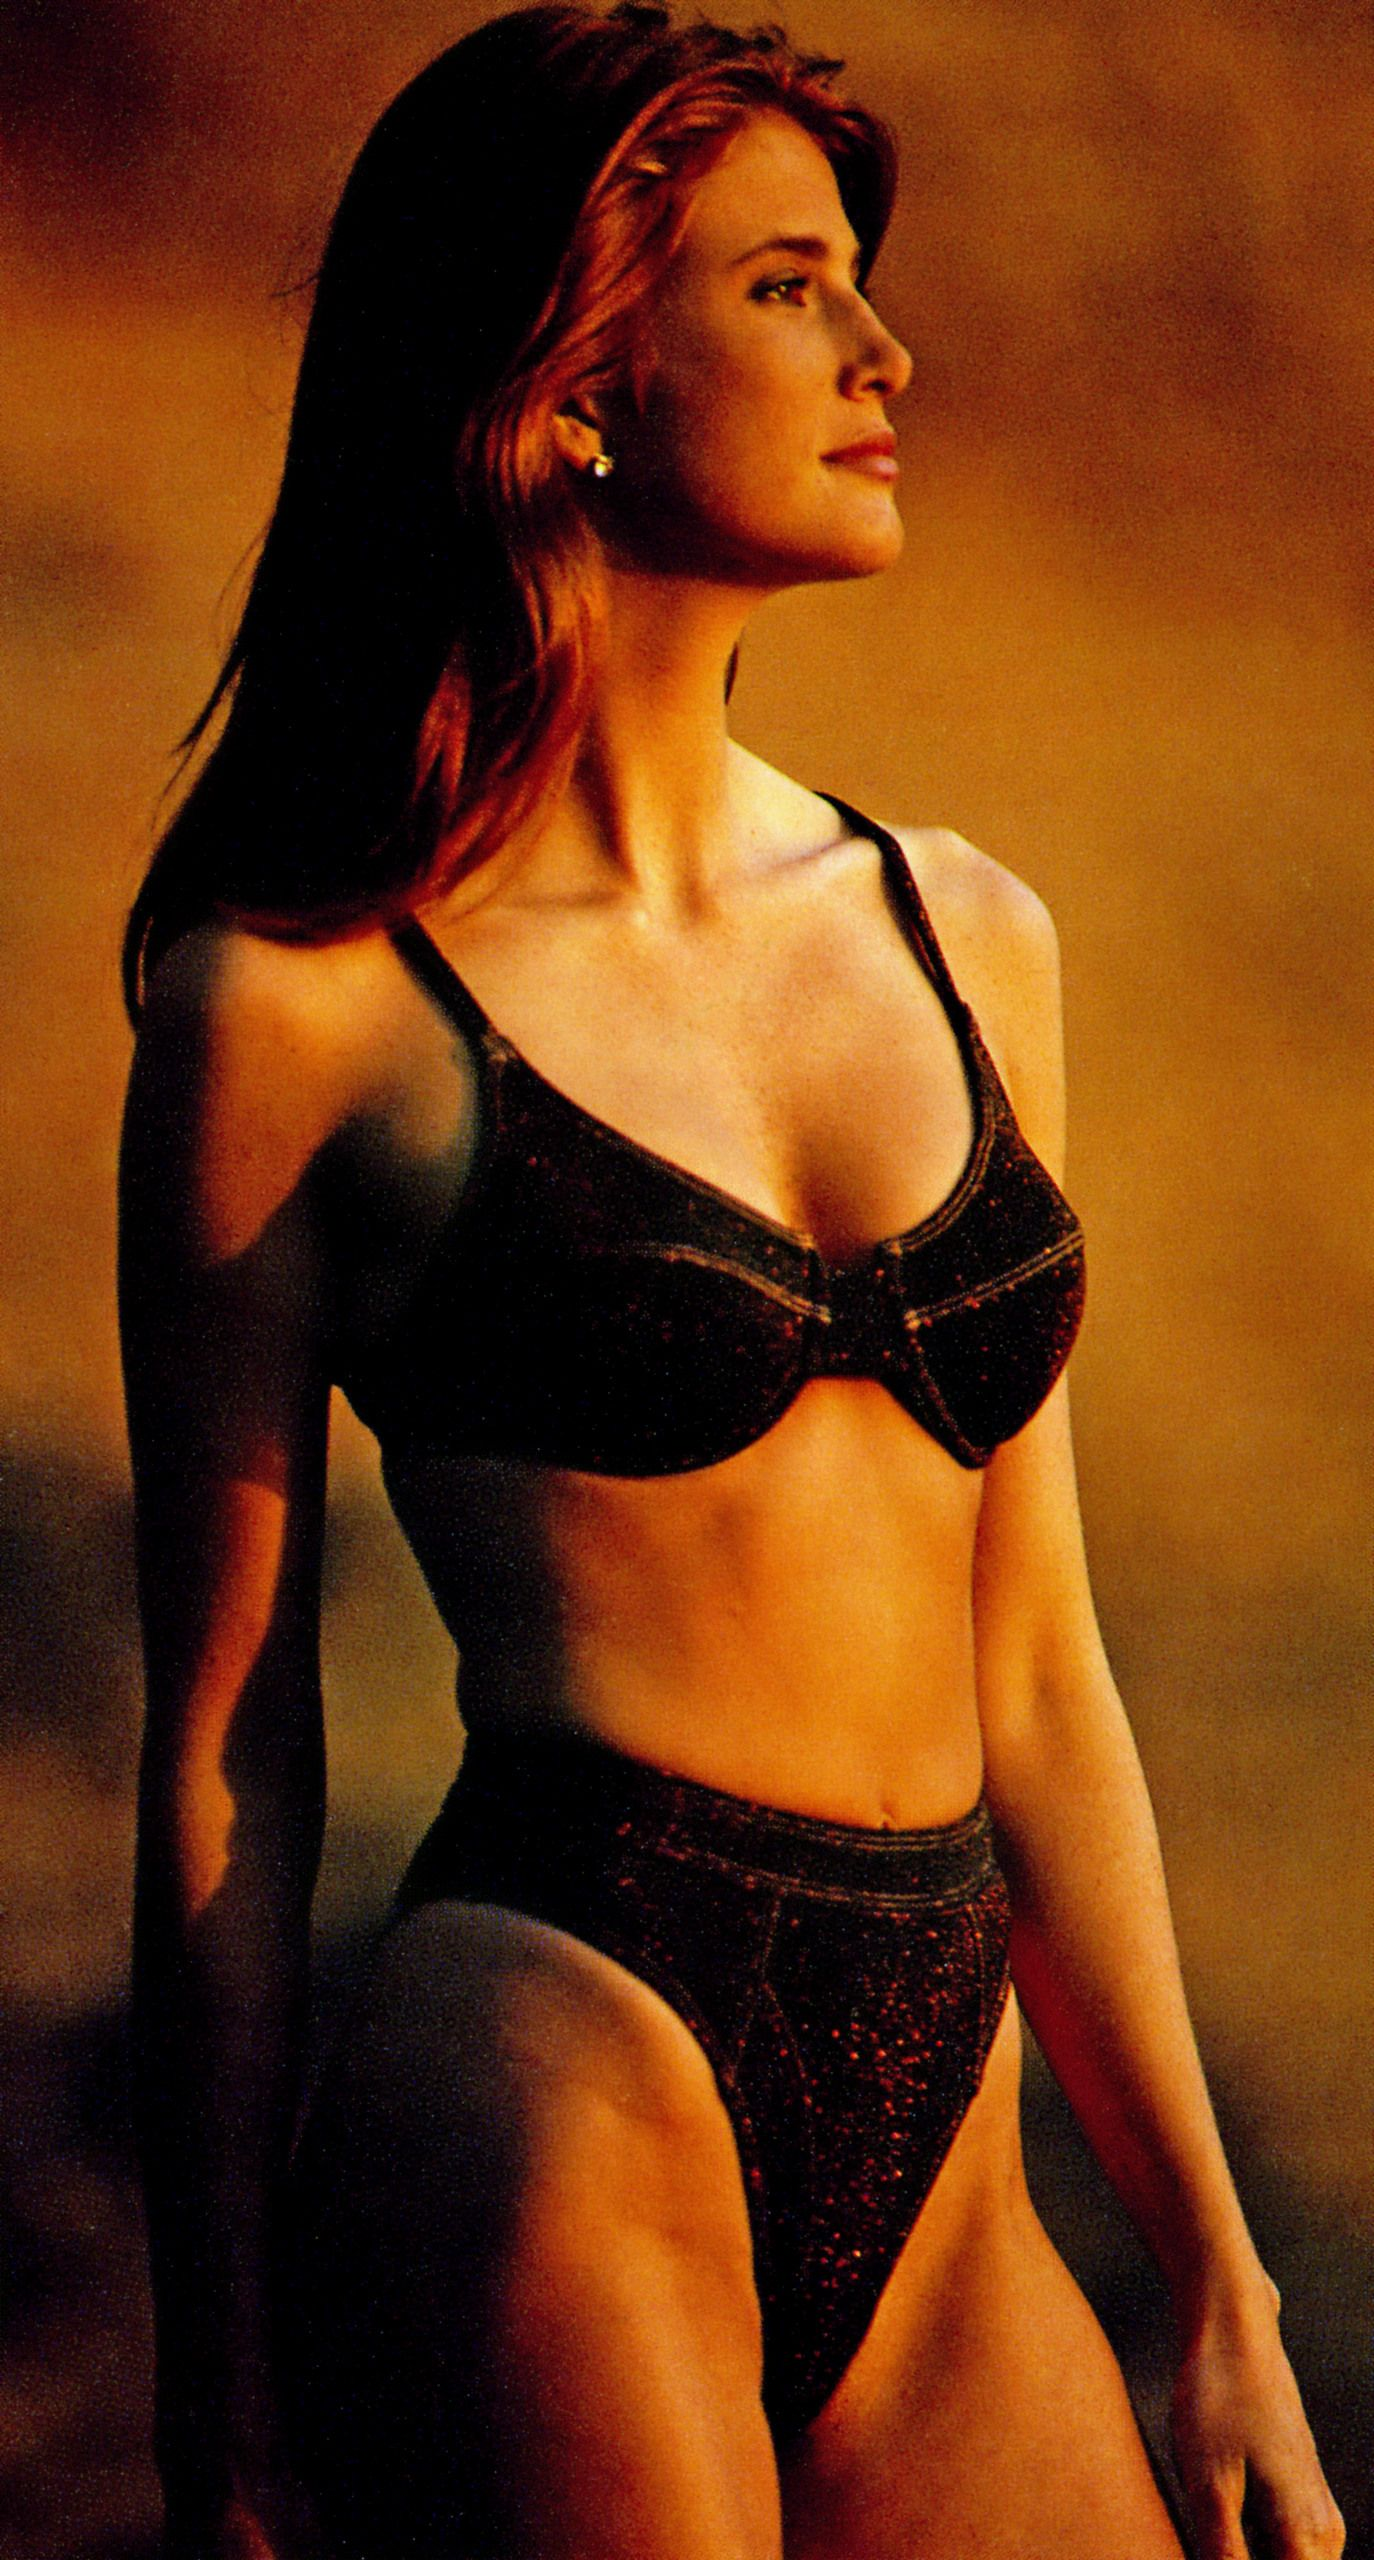 angie everhart (born: september 7, 1969, akron, oh, usa) is an